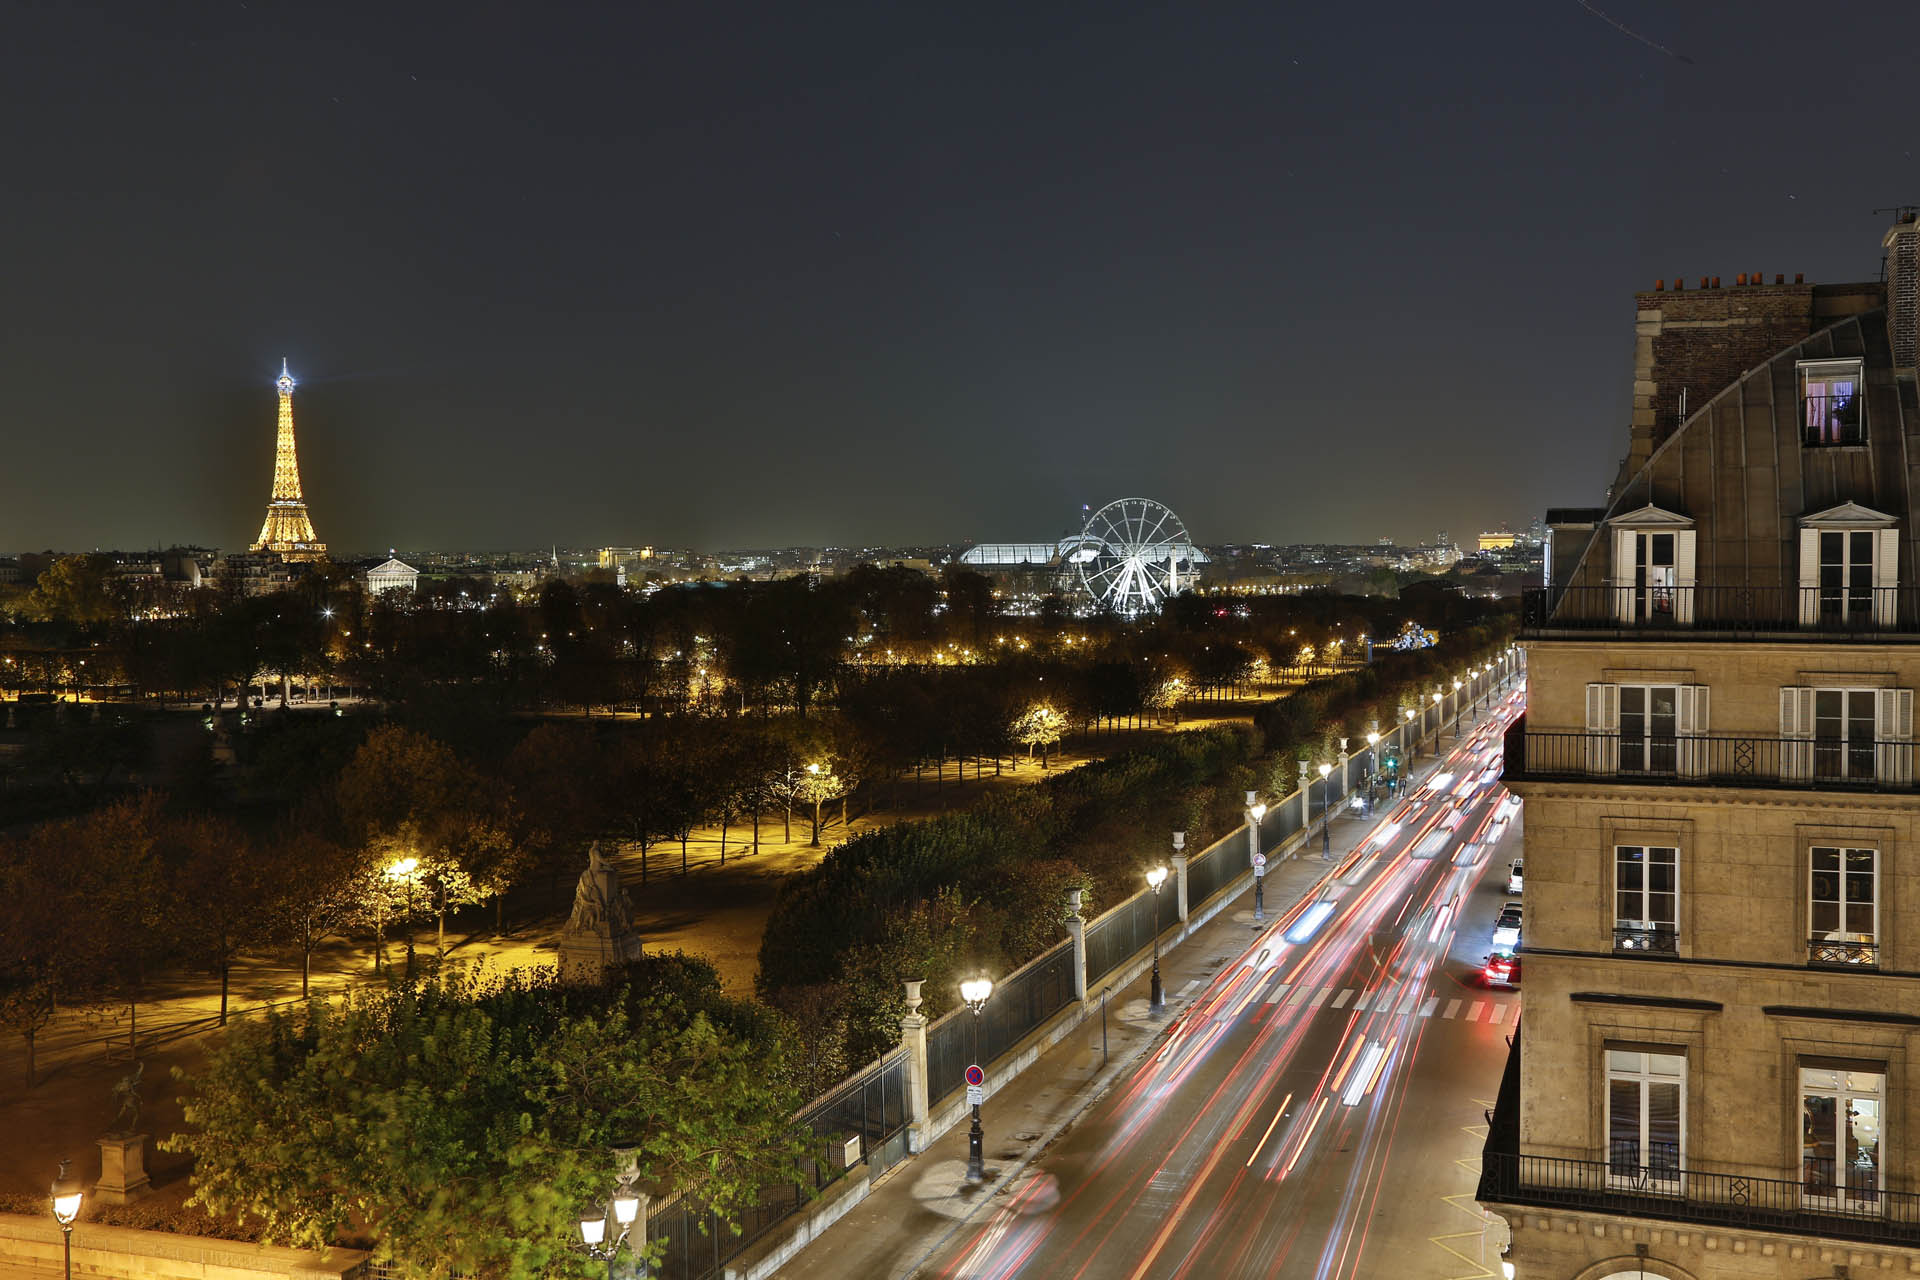 235/Vue/View Tuileries 1 - CHotel Regina Paris_1.jpg